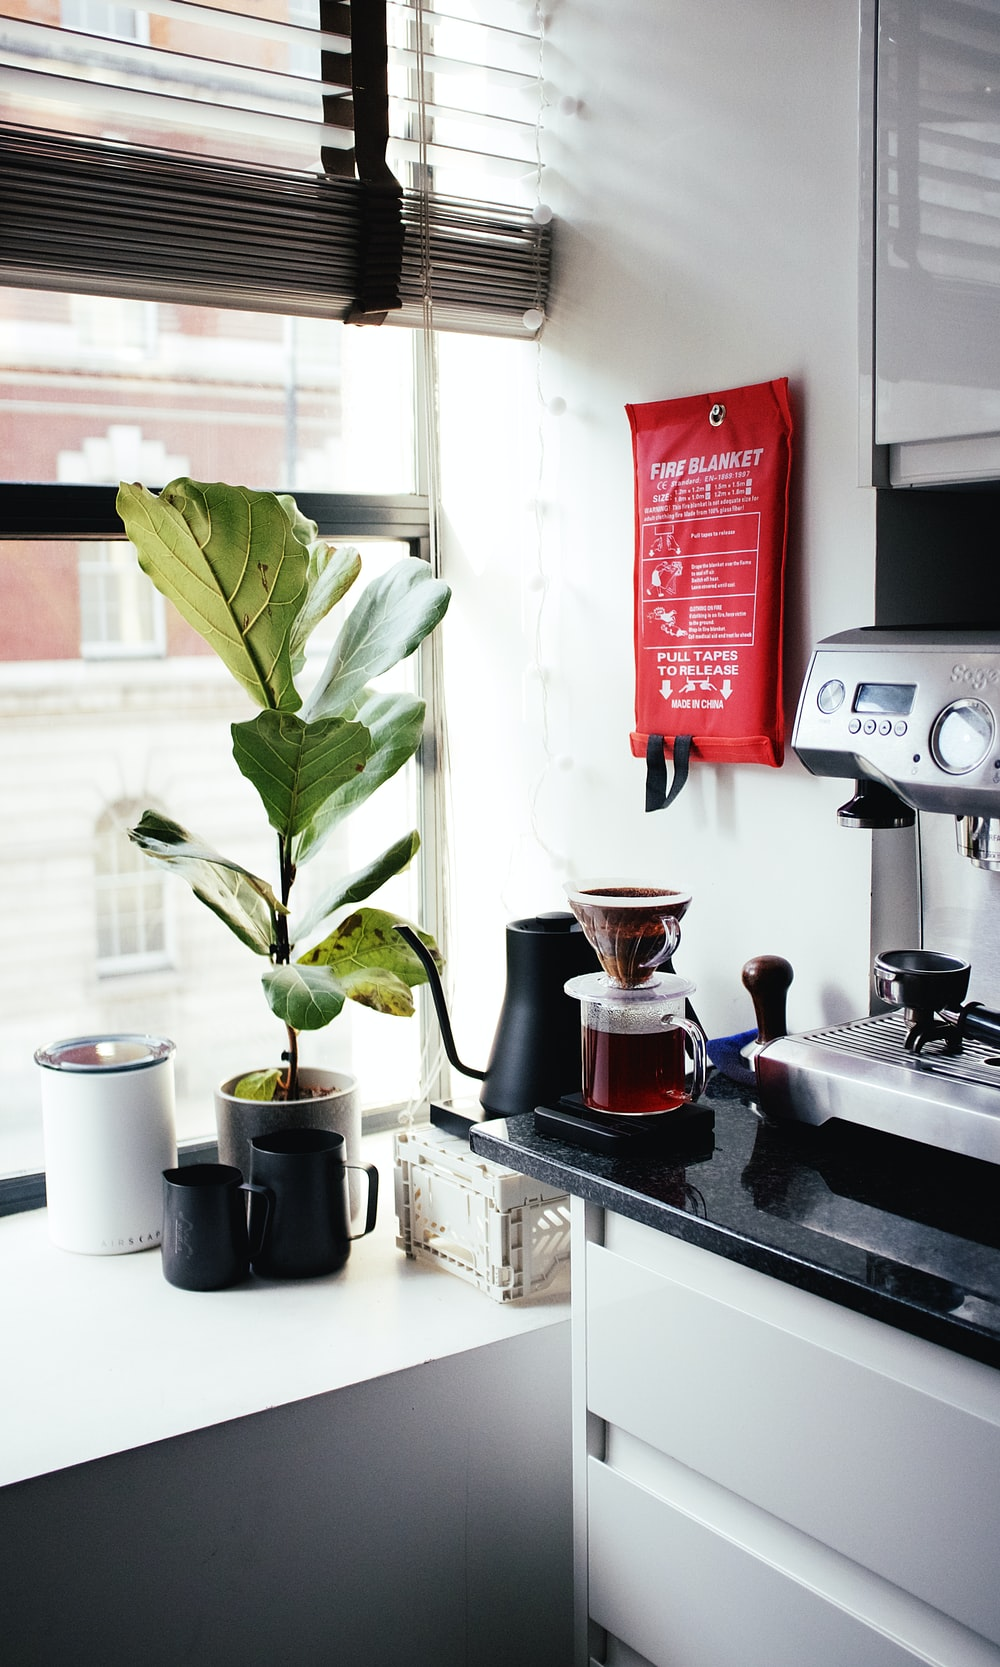 red and silver coffee maker beside white ceramic mug